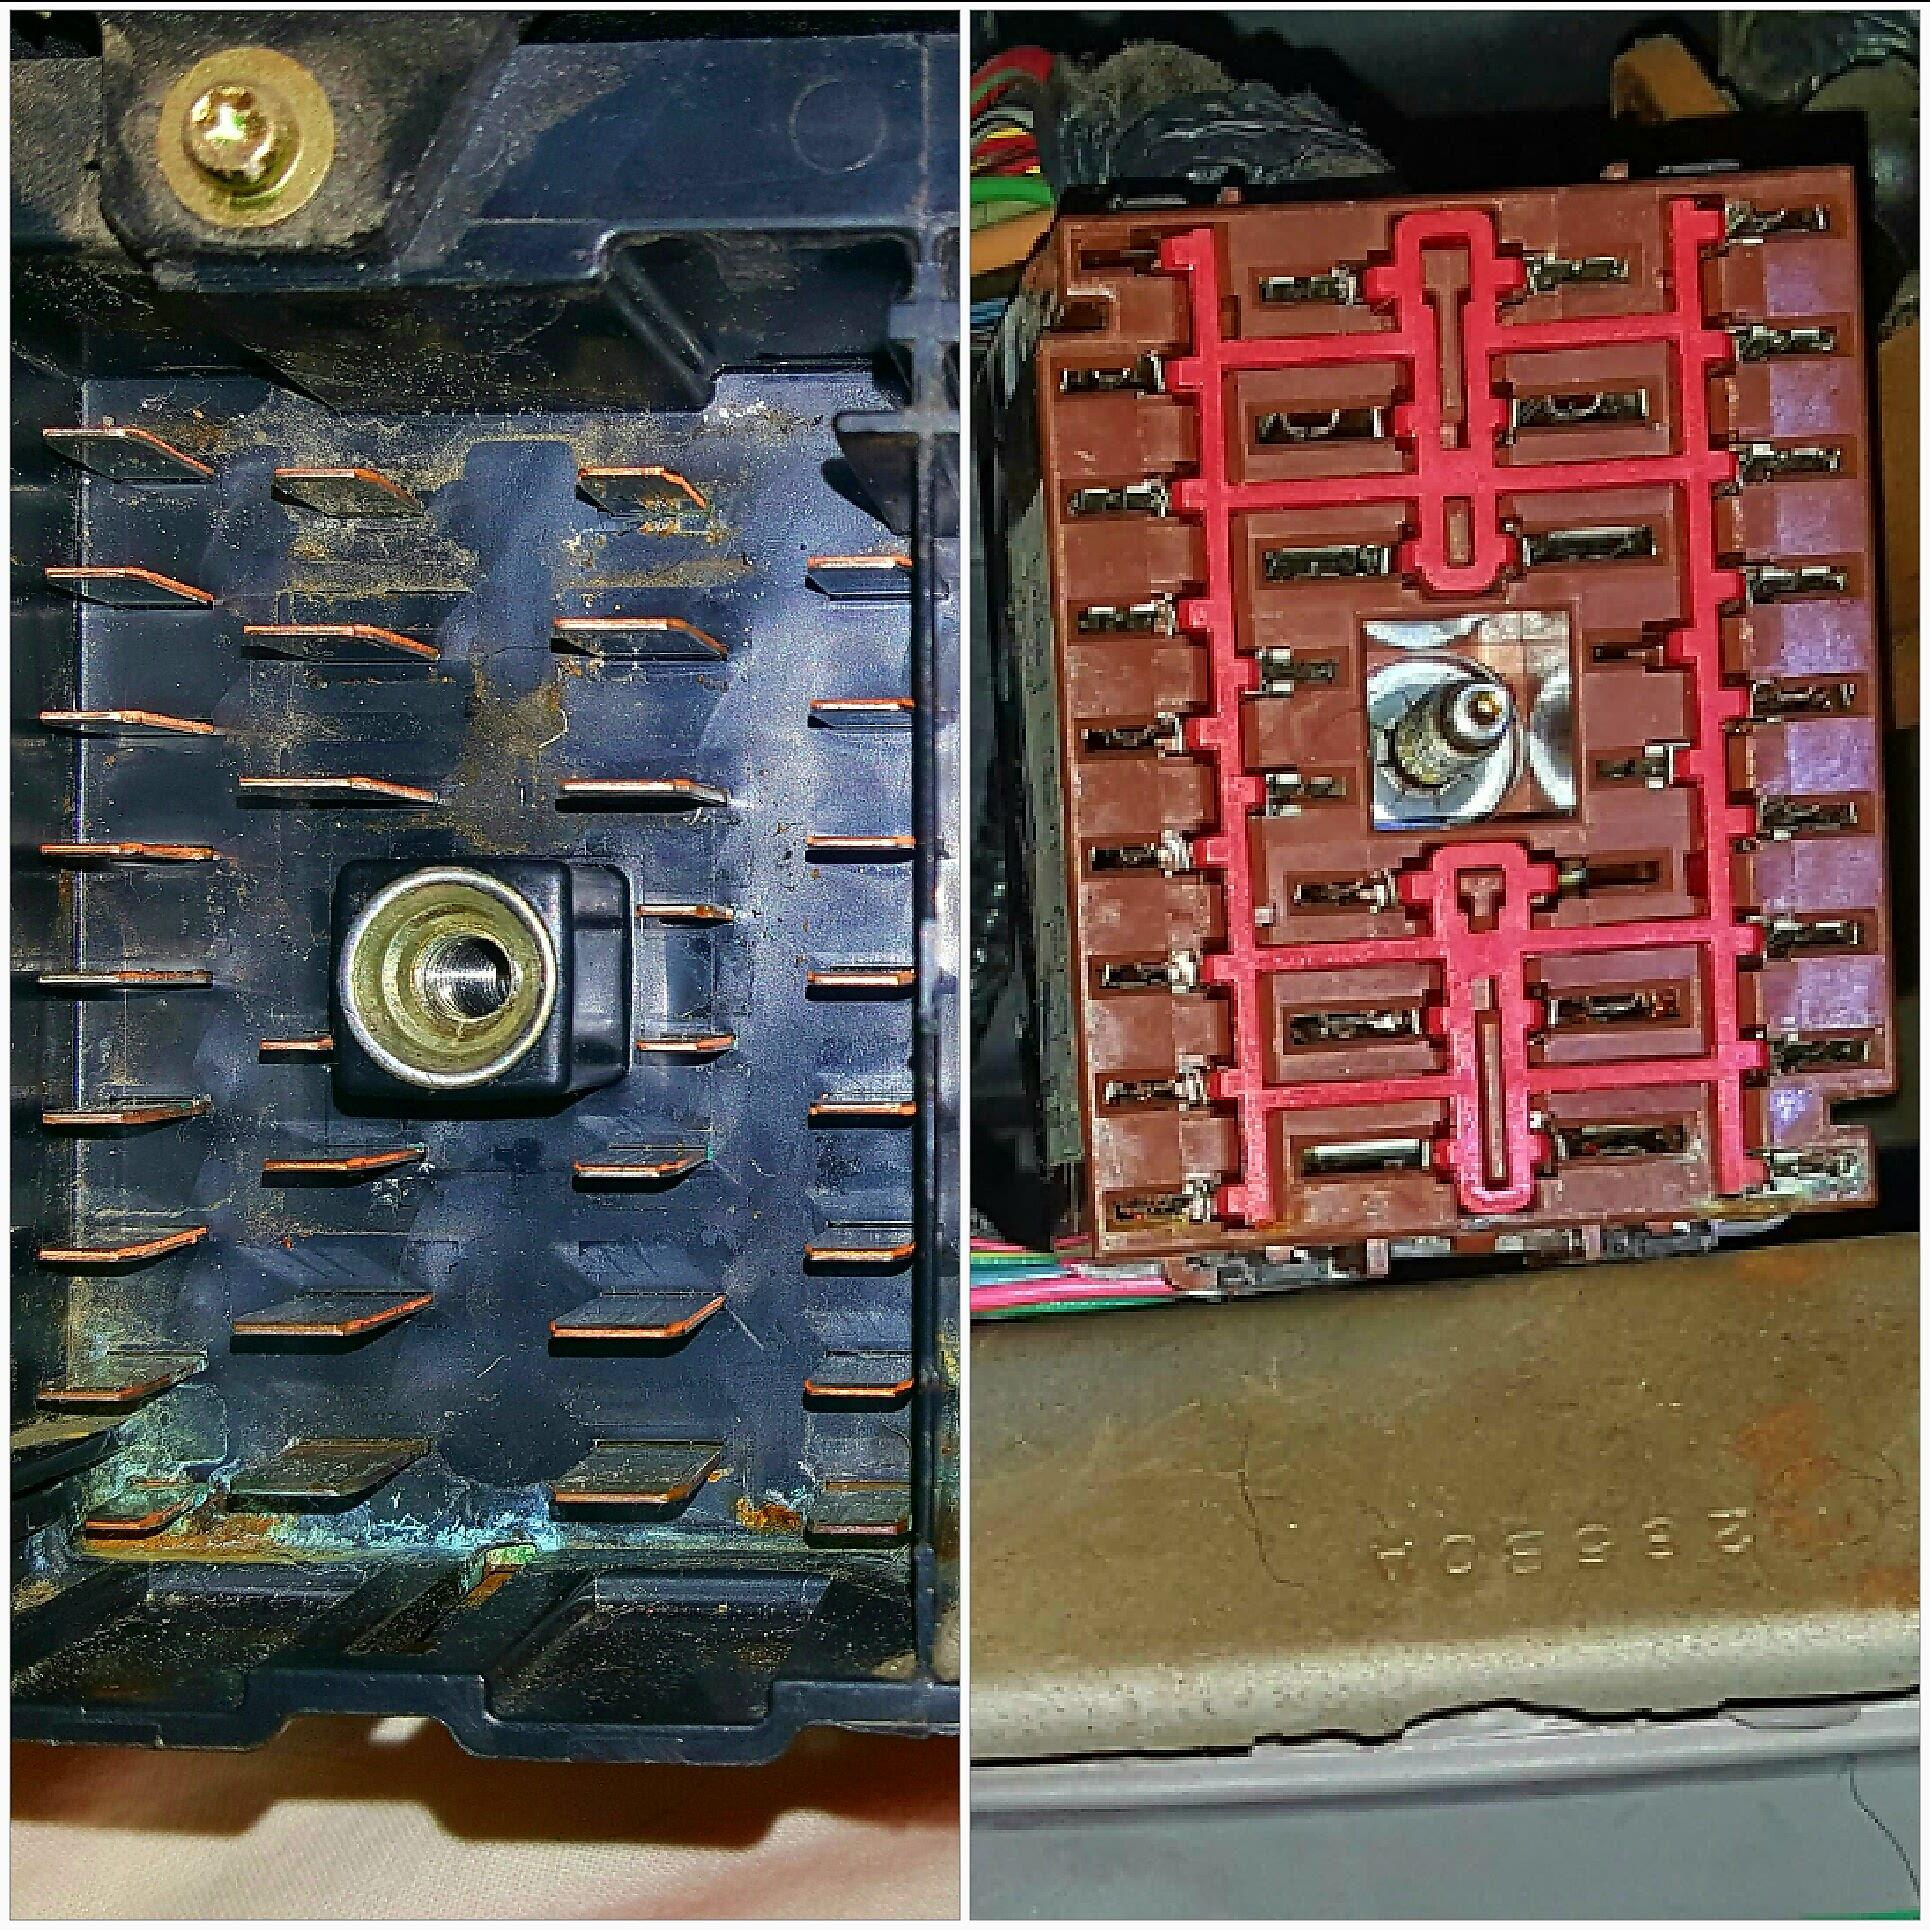 80 20161228_195514_093c83403866e76d4d77ab324ccebc9127c17d68 my diy story fuse box gen disassemble, clean, reinstall due to how to clean corrosion from fuse box at edmiracle.co